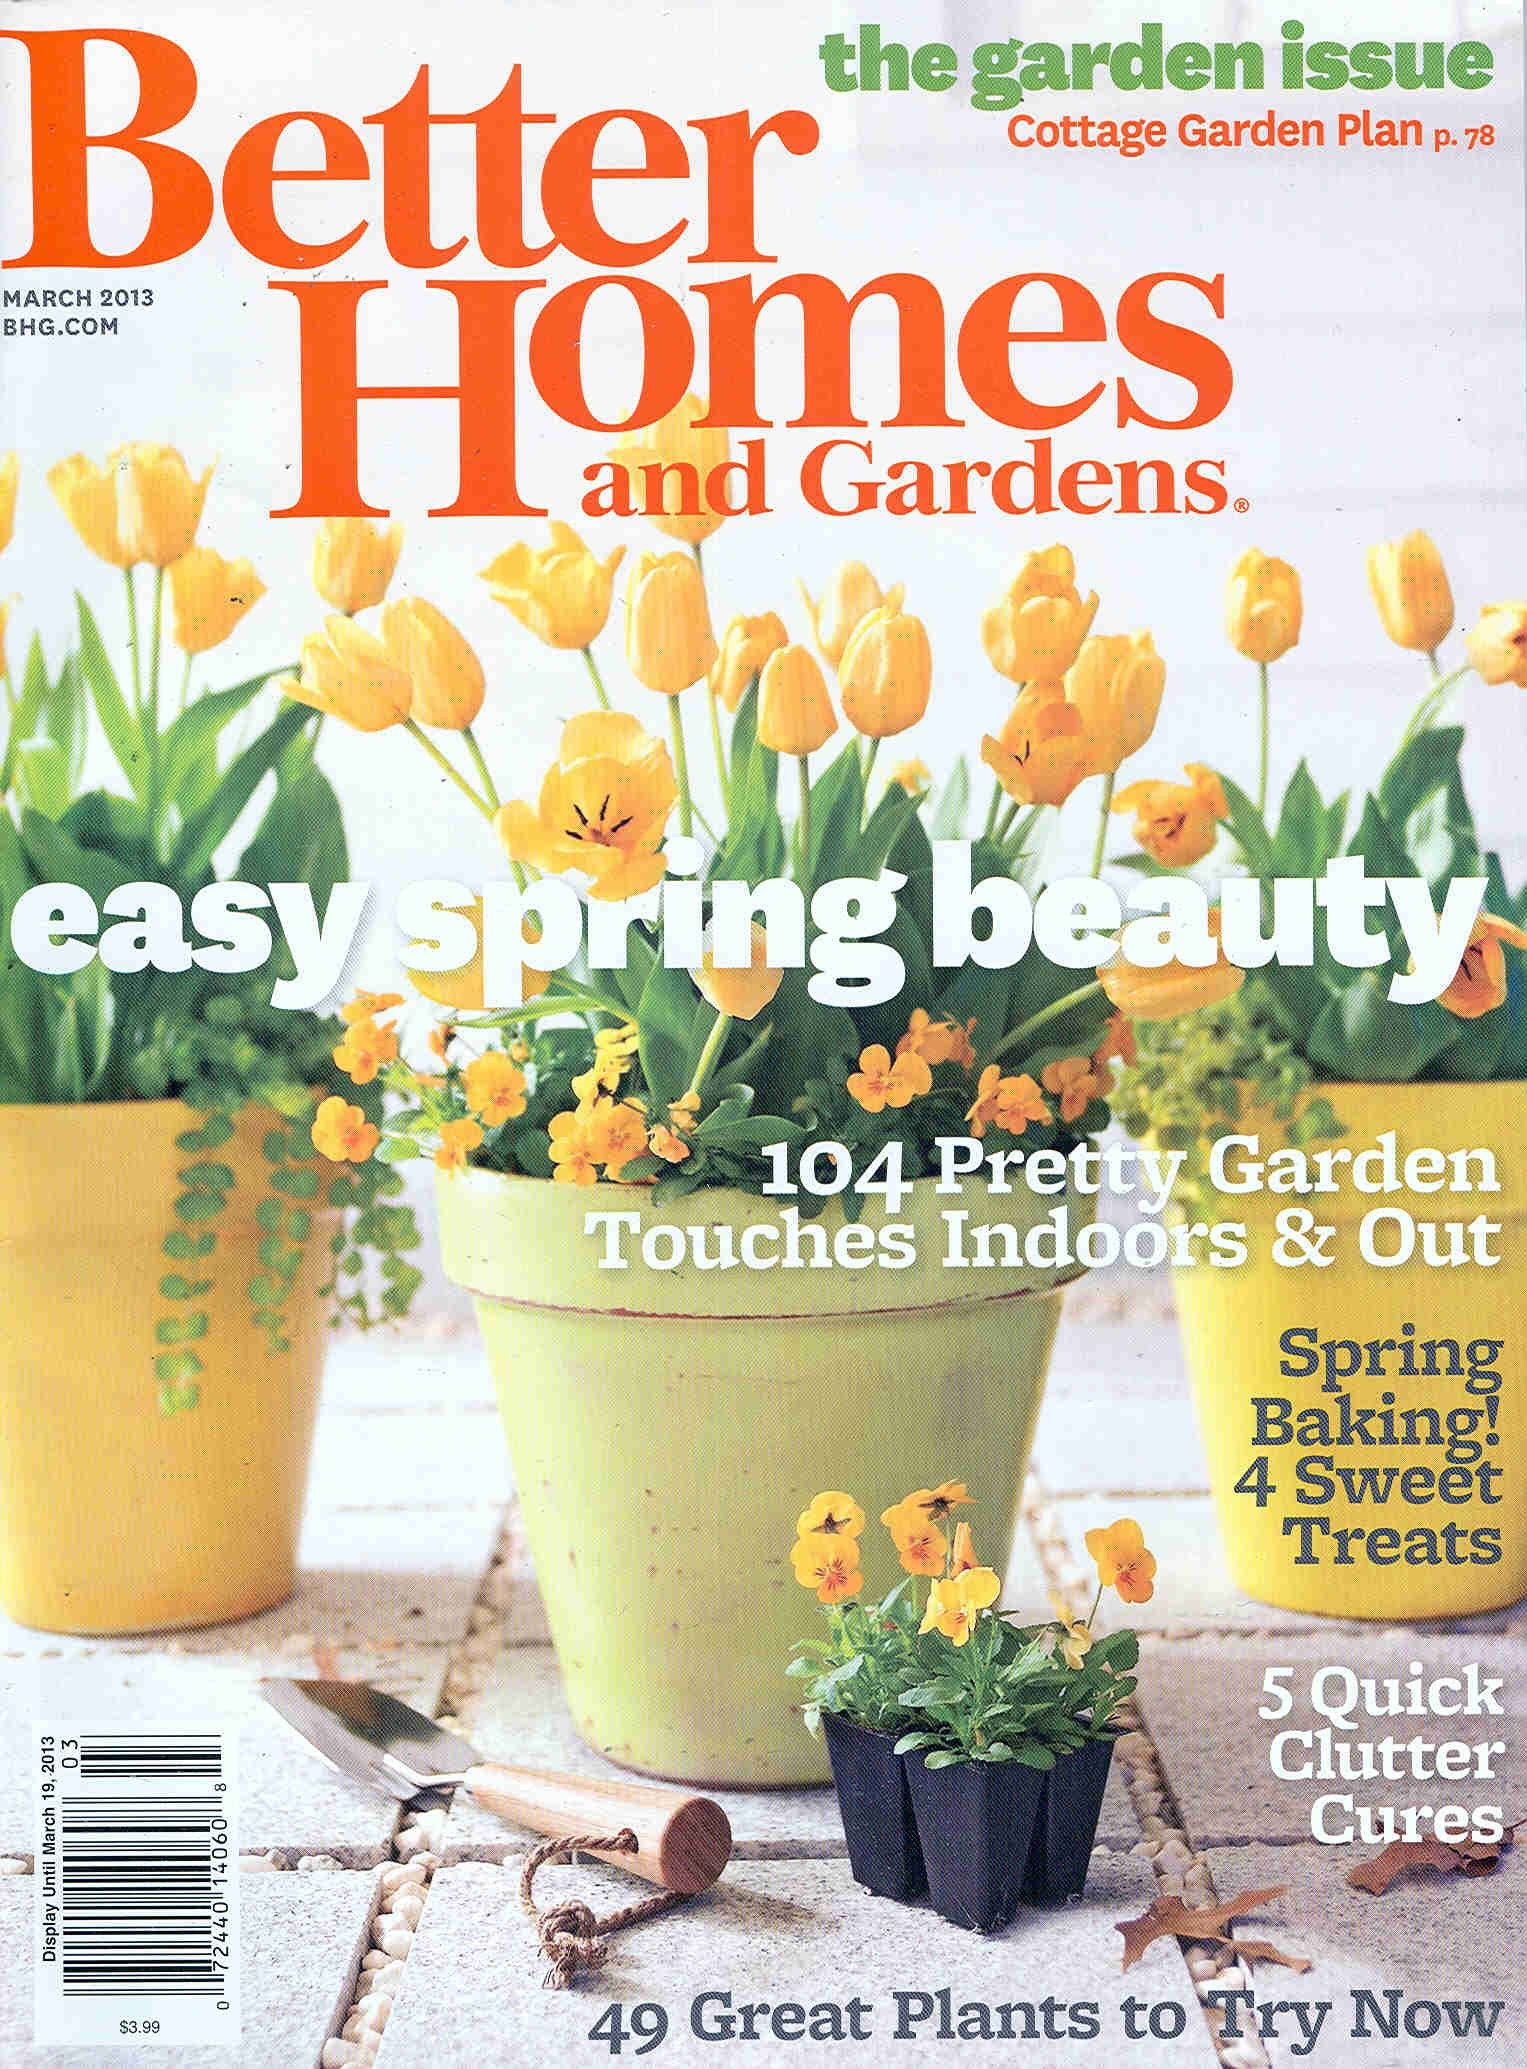 628fc83640a2400ef90608359649a71d - Better Homes And Gardens Magazine Unsubscribe